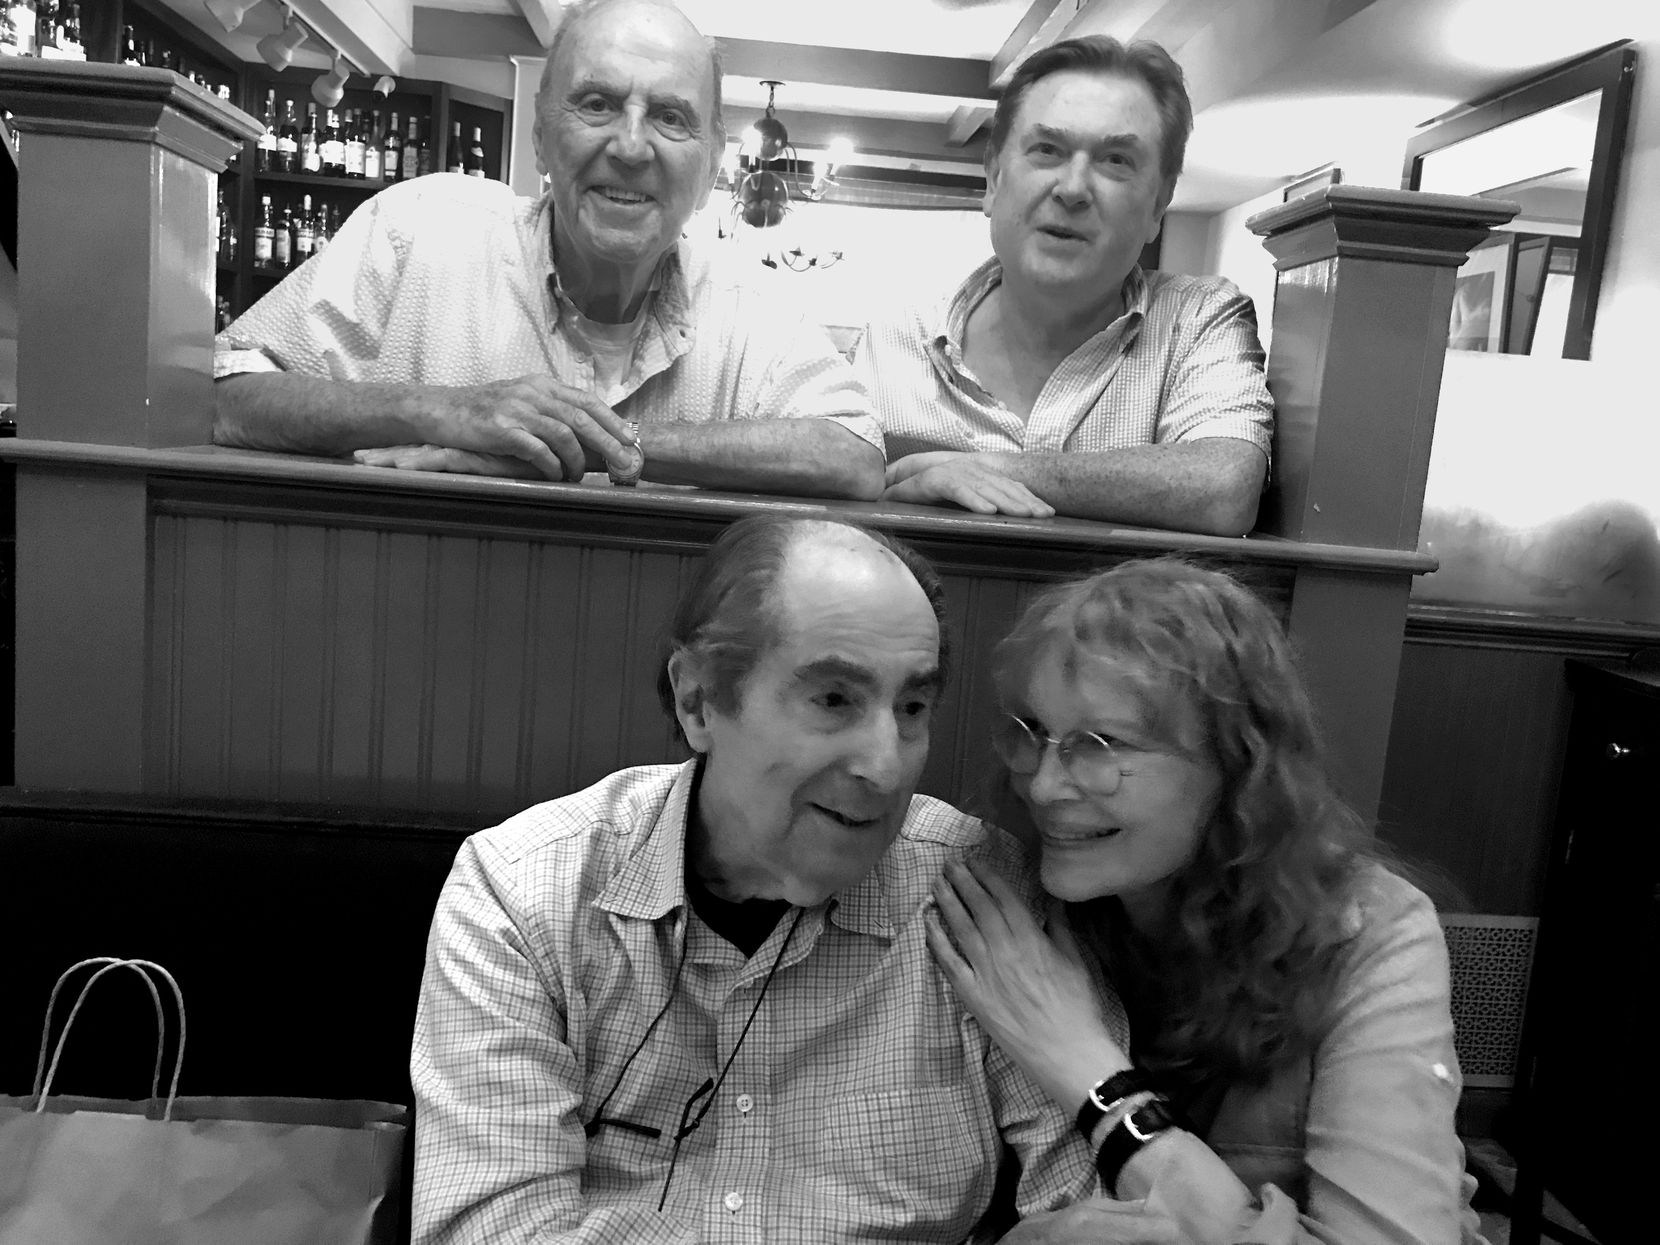 In Philip Roth's final years, he often met his close friend Mia Farrow at his favorite Connecticut restaurant, the West Street Grill in Litchfield. The owners, Charlie Kafferman and James O Shea (standing in back), were old friends. (Courtesy of Mia Farrow)